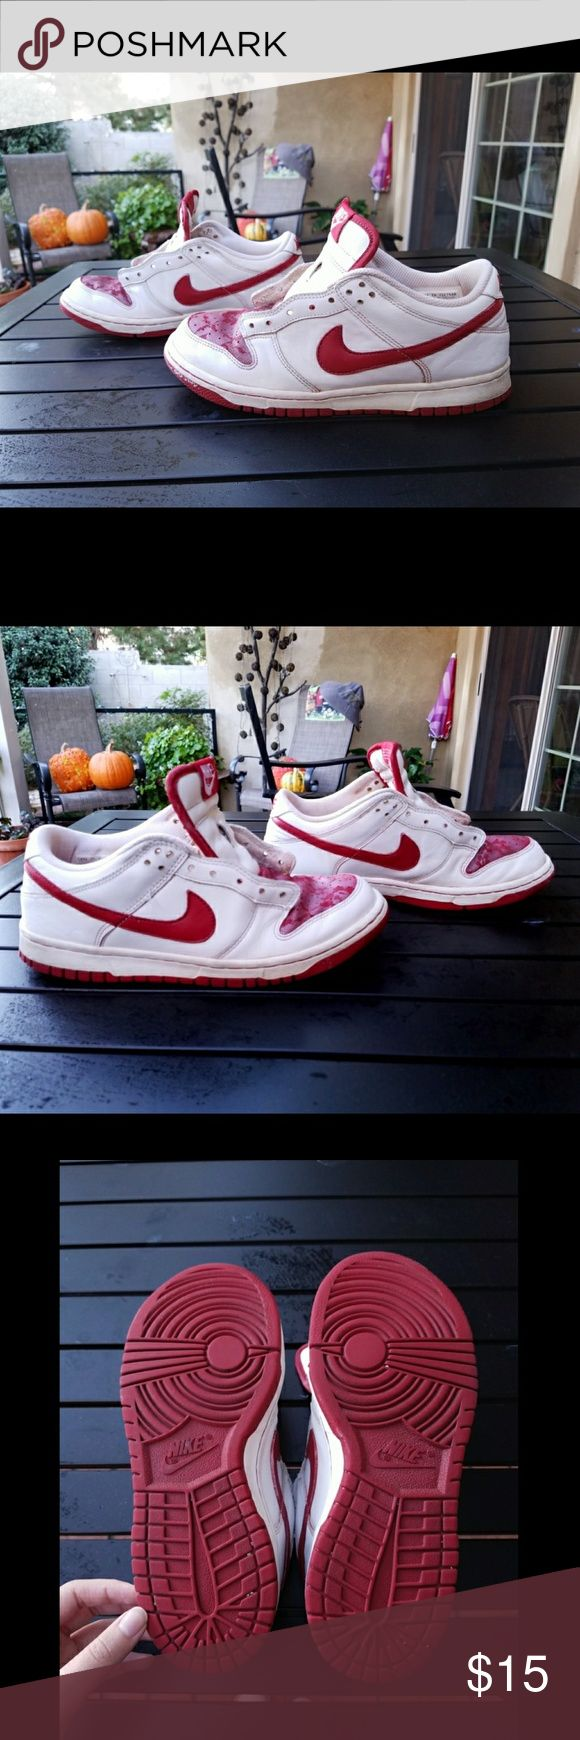 """"""" Rose Lace """" Design Nike Shoes 🍉MAKE AN OFFER!🍎 I got these from Savers, used them once and cleaned / disinfected them as best as I could several times over (thanks to the power of Google). I cleaned and washed the removable insoles too. As seen in the picture There was one dirt stain I couldn't quite scrub out. I will give it one more thorough cleaning before shipping it off. I forgot to take pictures with the shoelaces, I'll do that soon! These still have a lot of life in them! Good for…"""